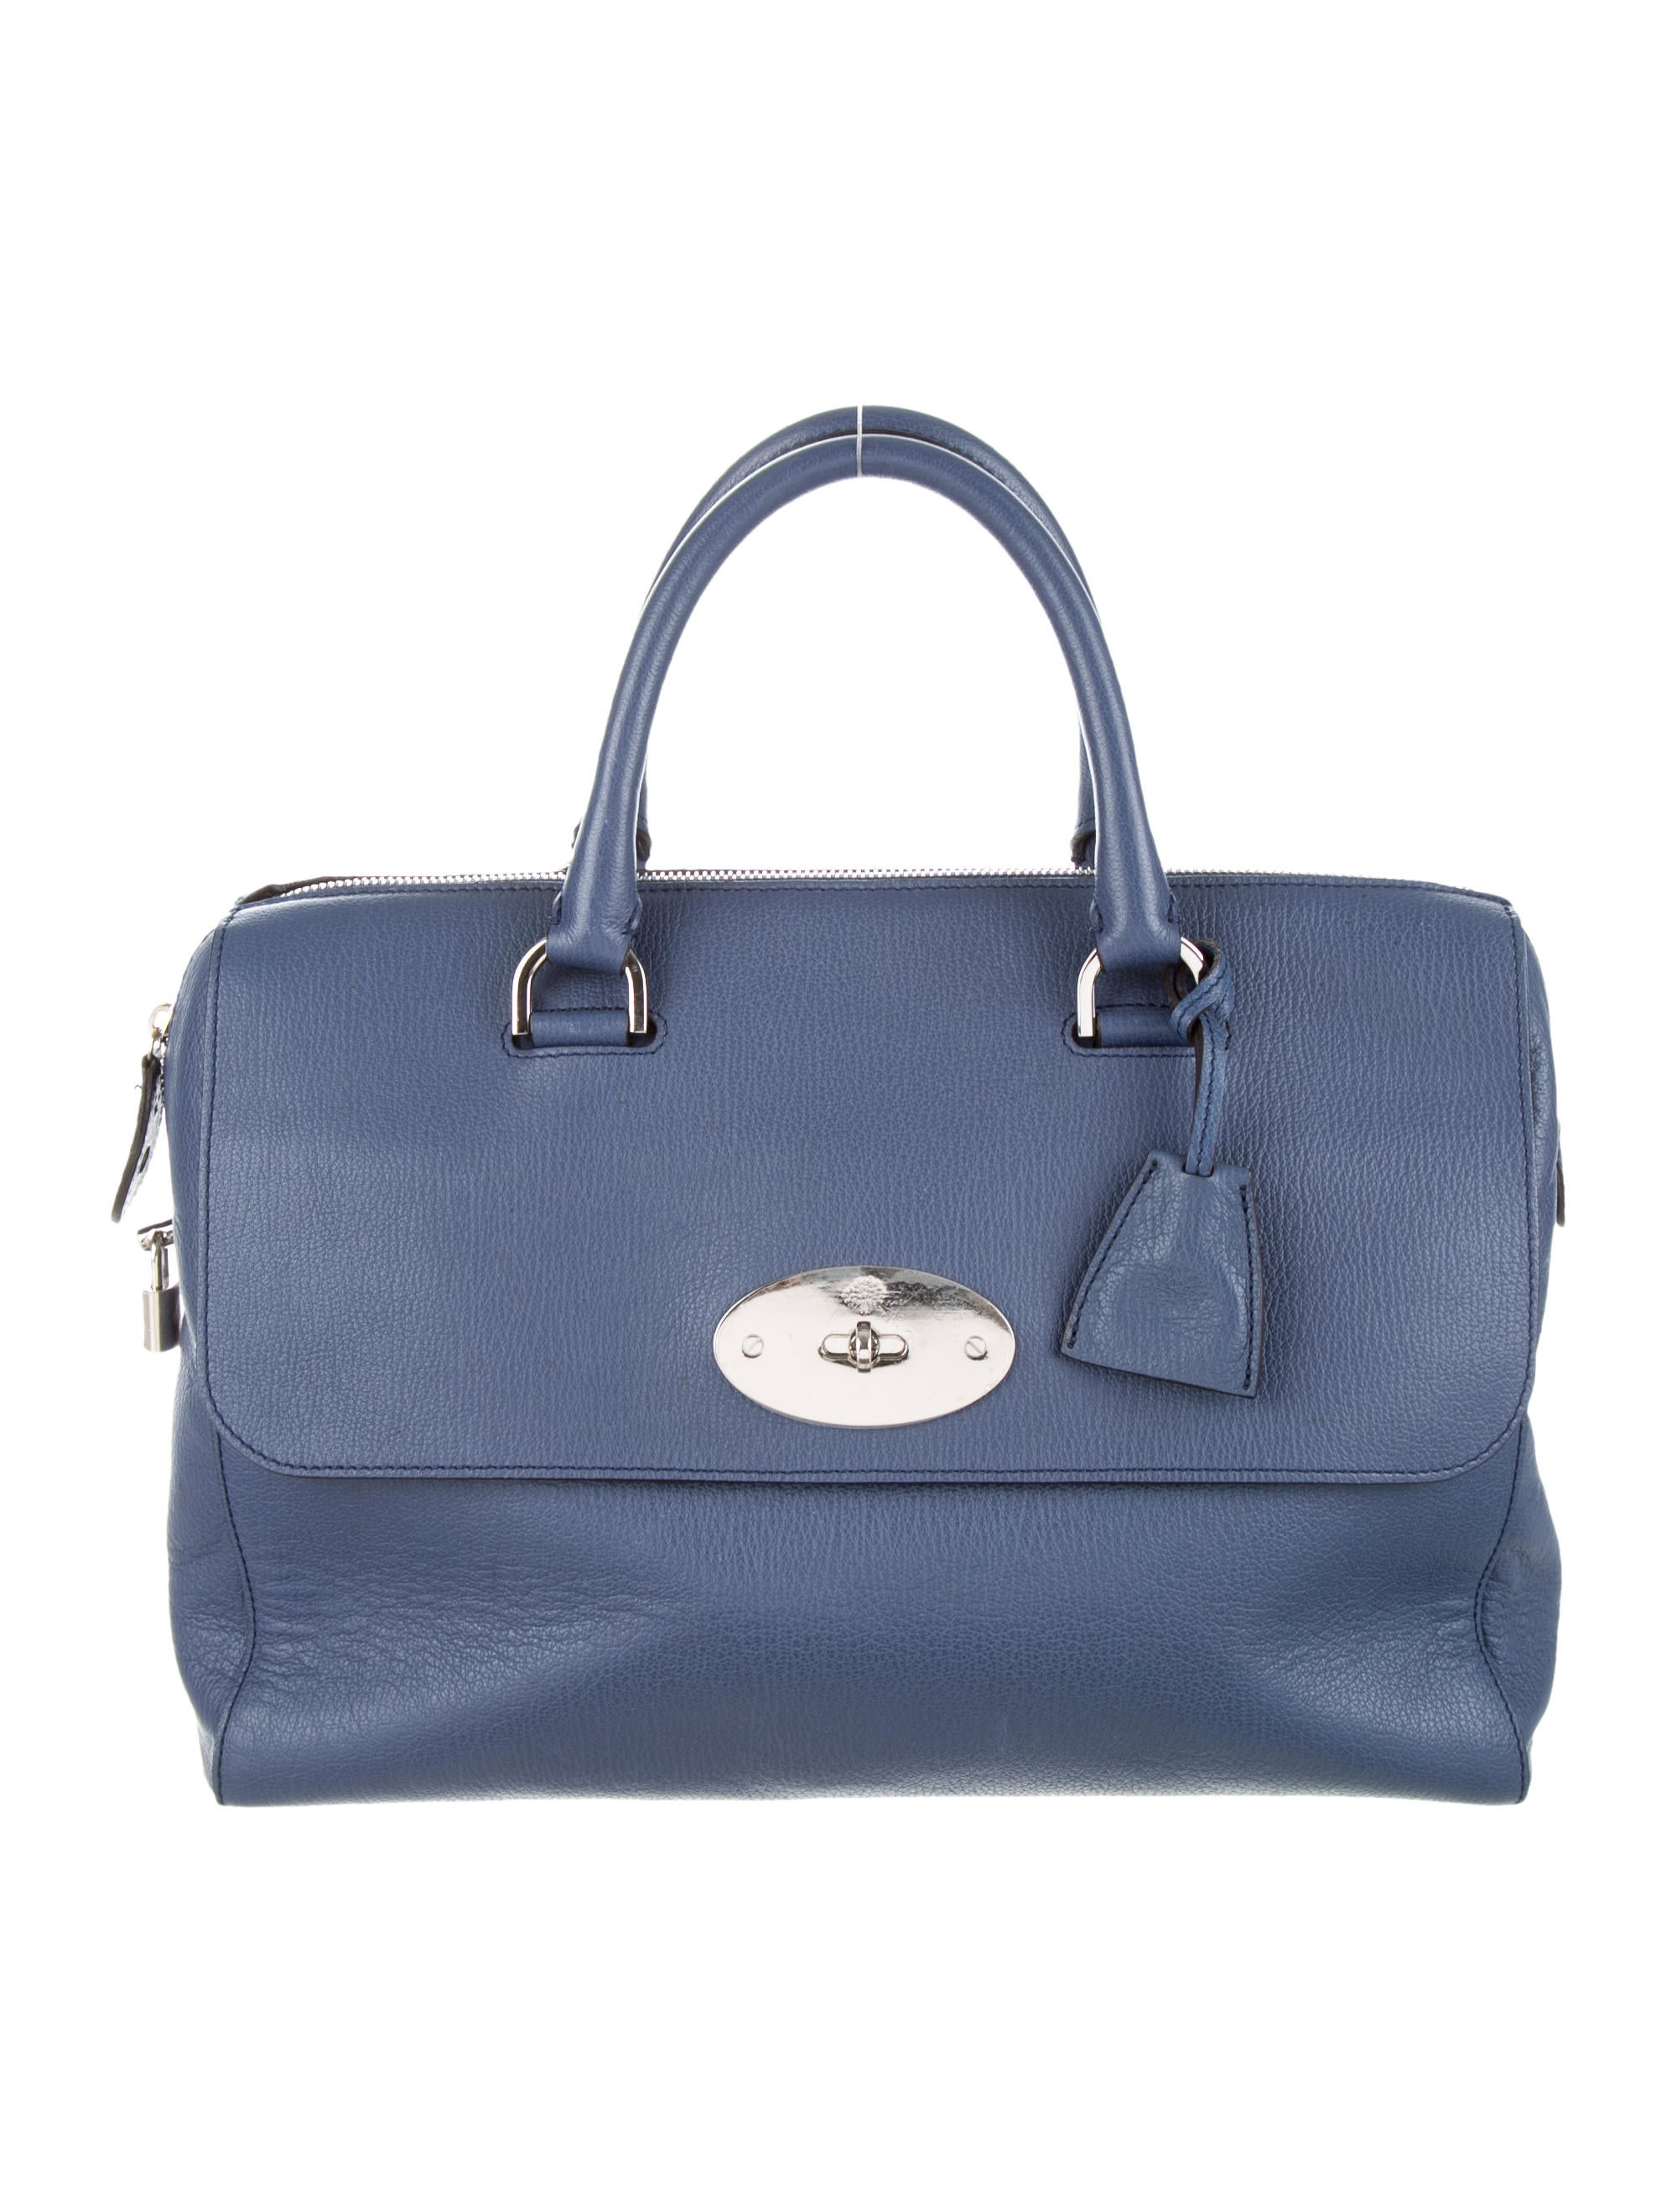 Mulberry Del Ray Bag - Handbags - MUL21362  09191c7f66aca